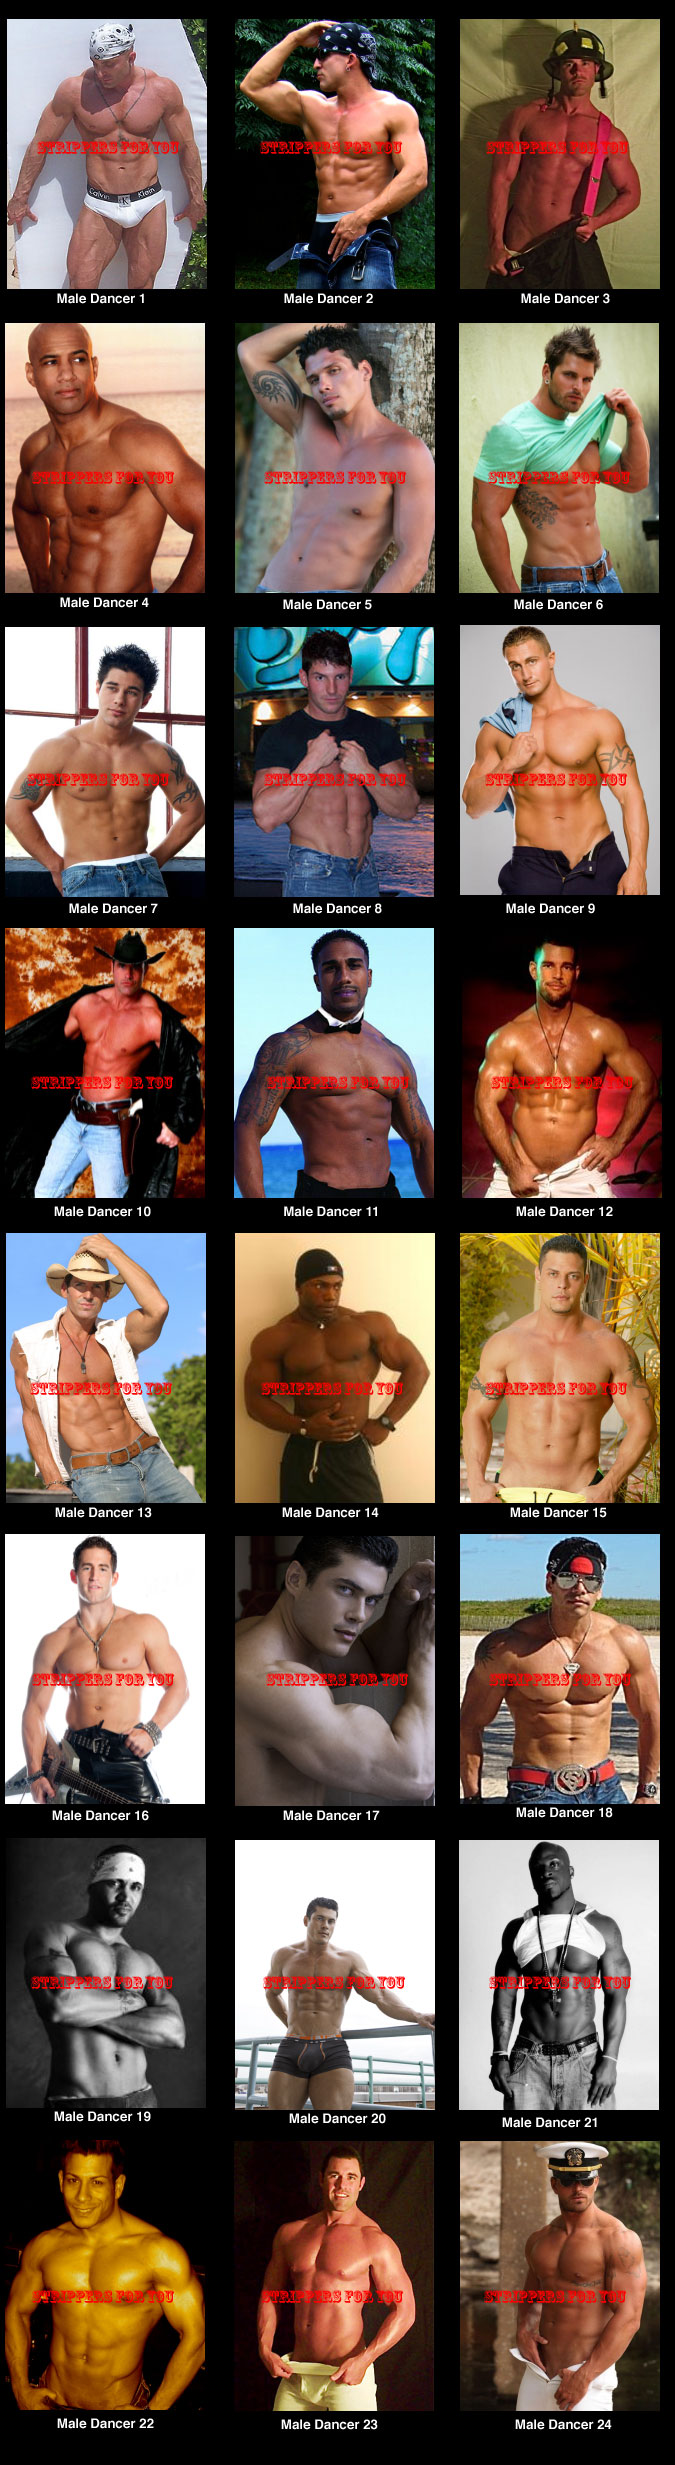 San Jose male strippers